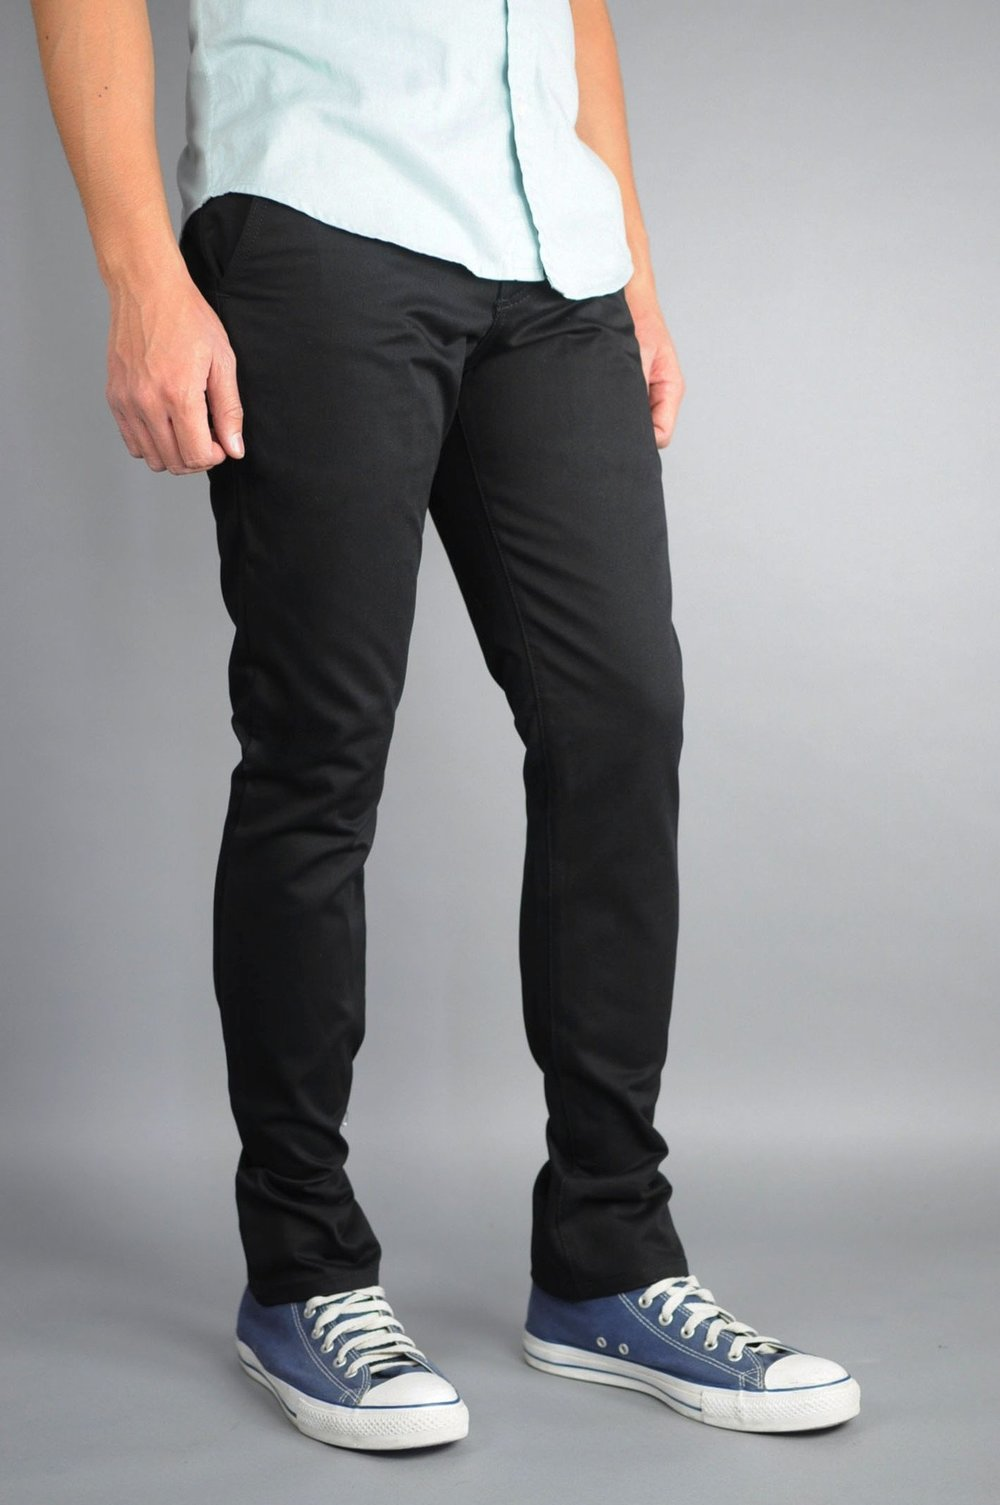 Lot of chino pants (Bershka - Zara - Pull & Bear - LFT - Massimo Dutti)_3